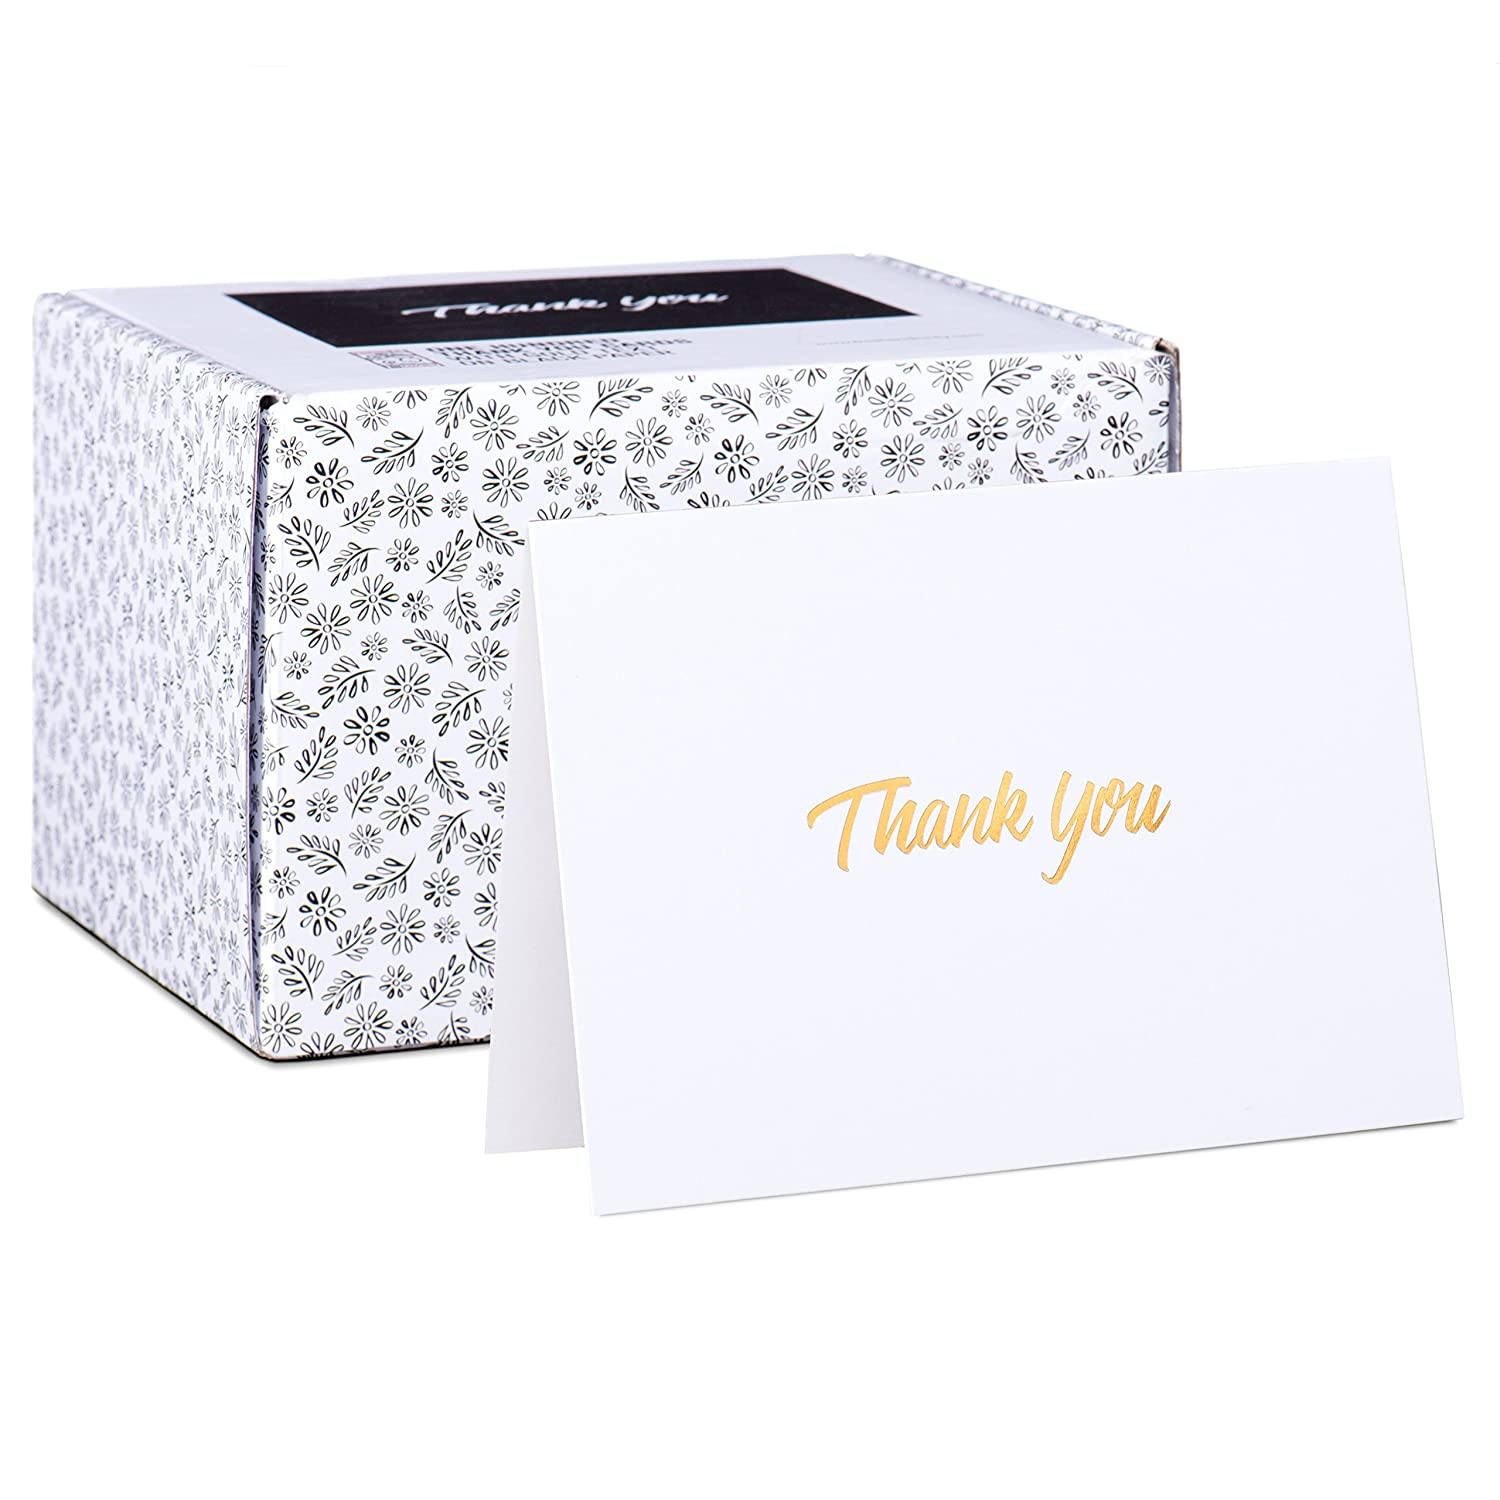 Amazon.com : 100 Thank You Cards - White Bulk Note Cards with Gold ...